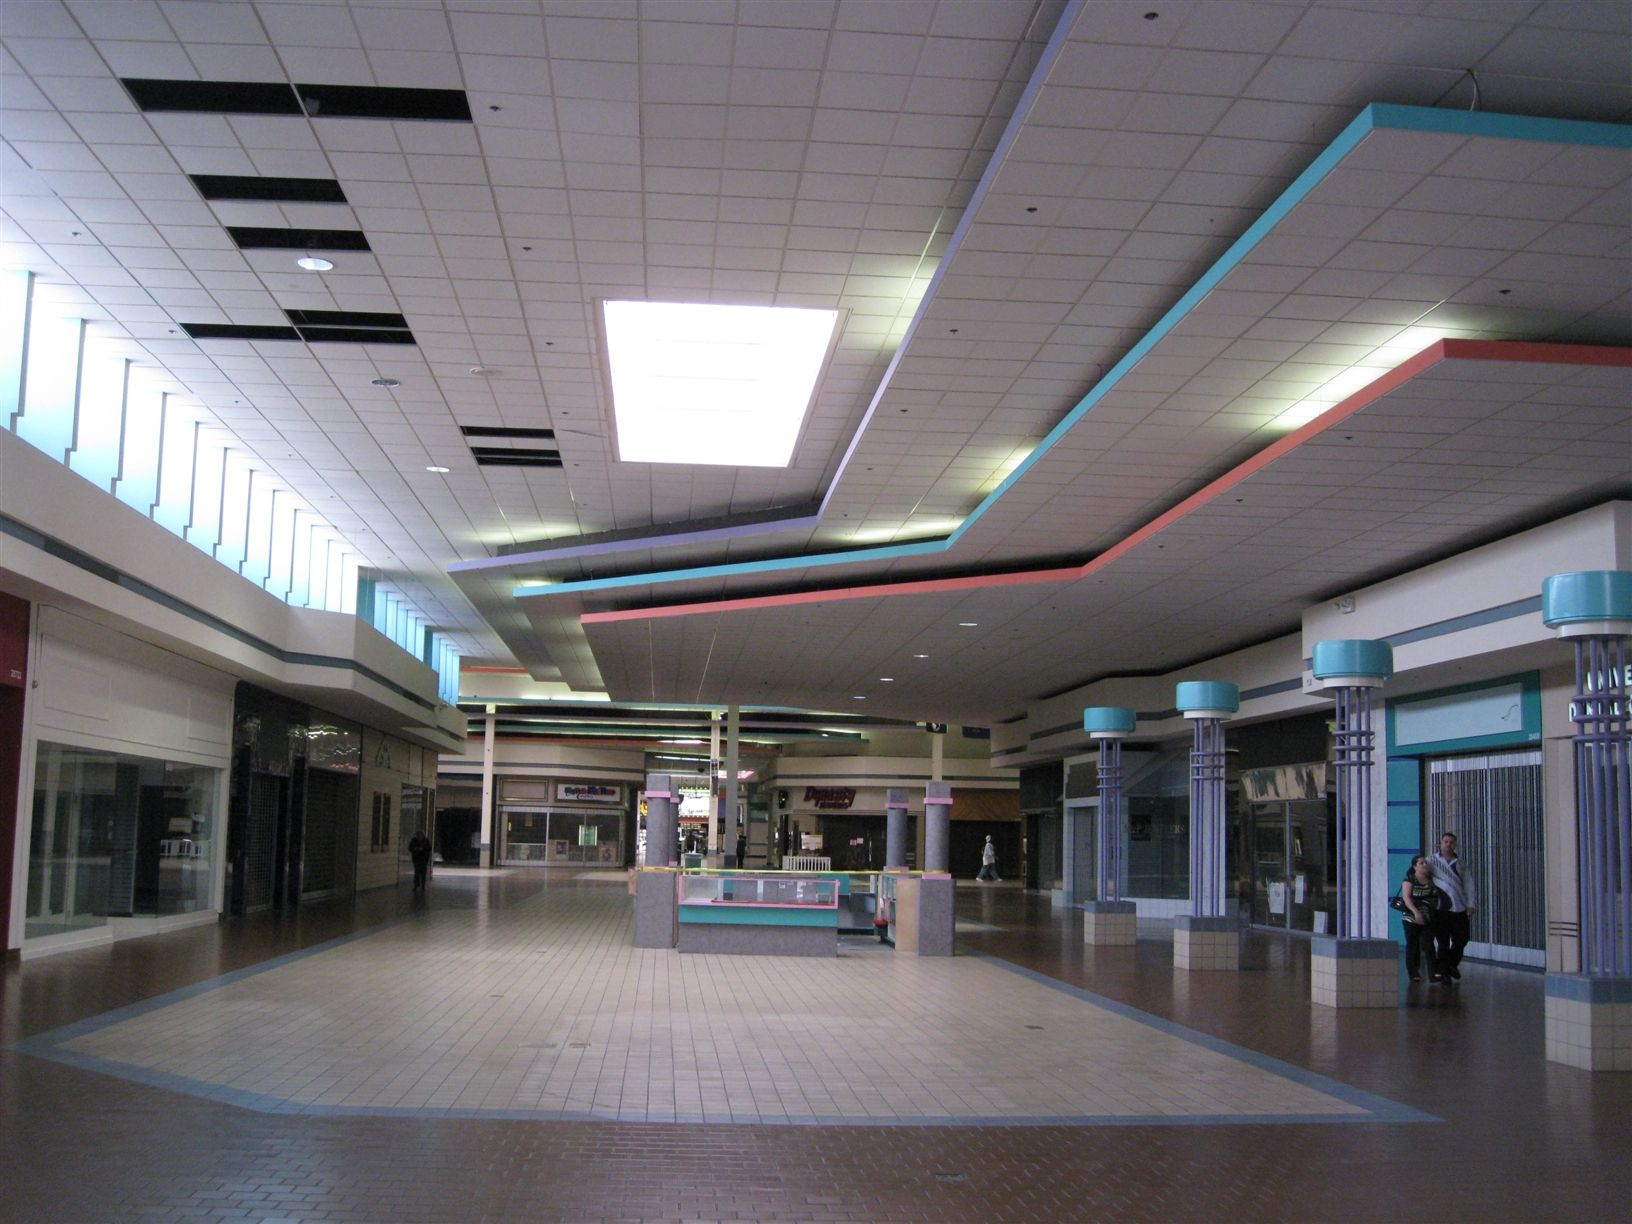 Man Cave Store Dixie Mall : Universal mall michigan abandoned malls pinterest